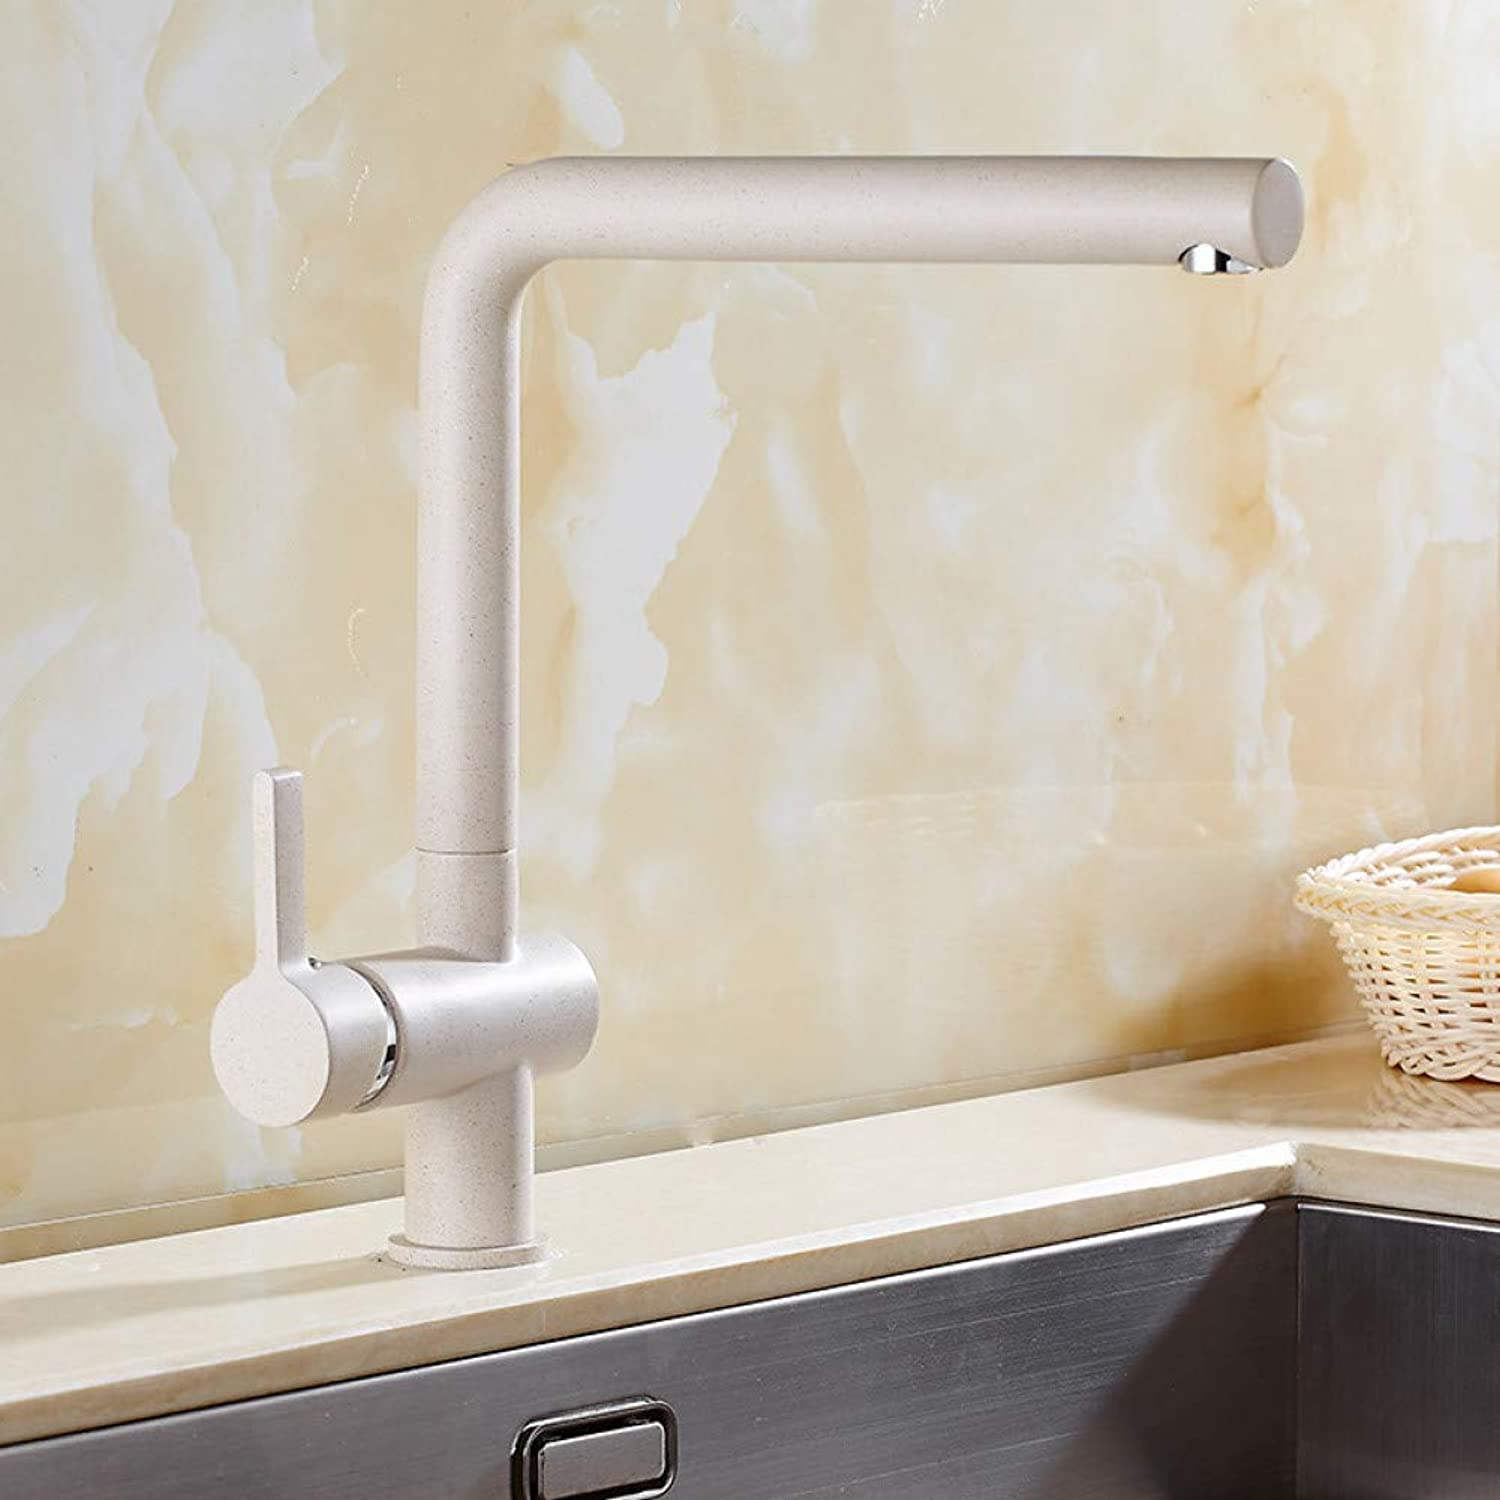 YHSGY Kitchen Taps Copper Oatmeal Kitchen Mixer Faucet redating Sink Sink Hot and Cold Faucet